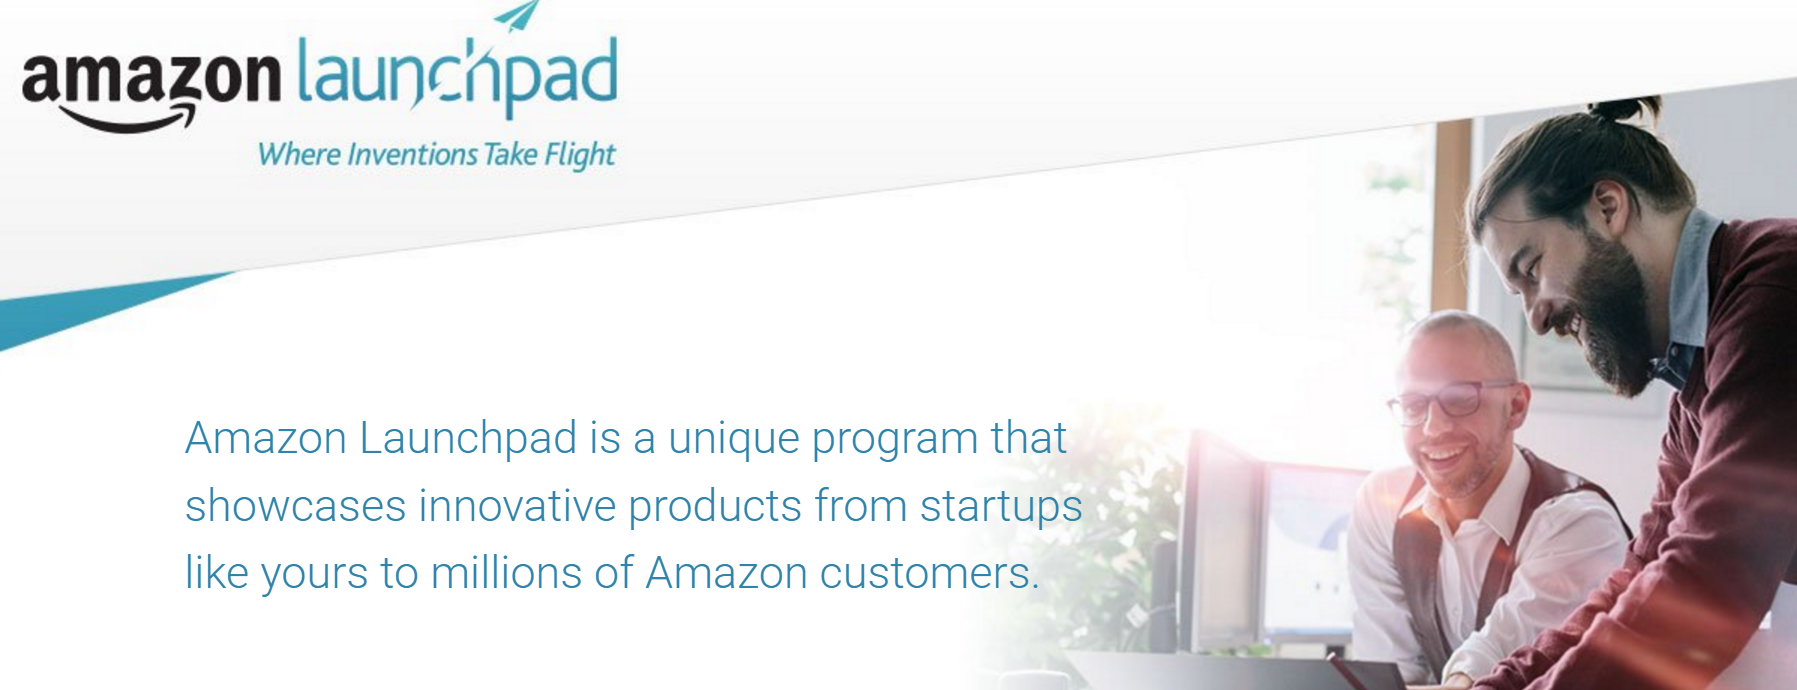 amazon launchpad signup page